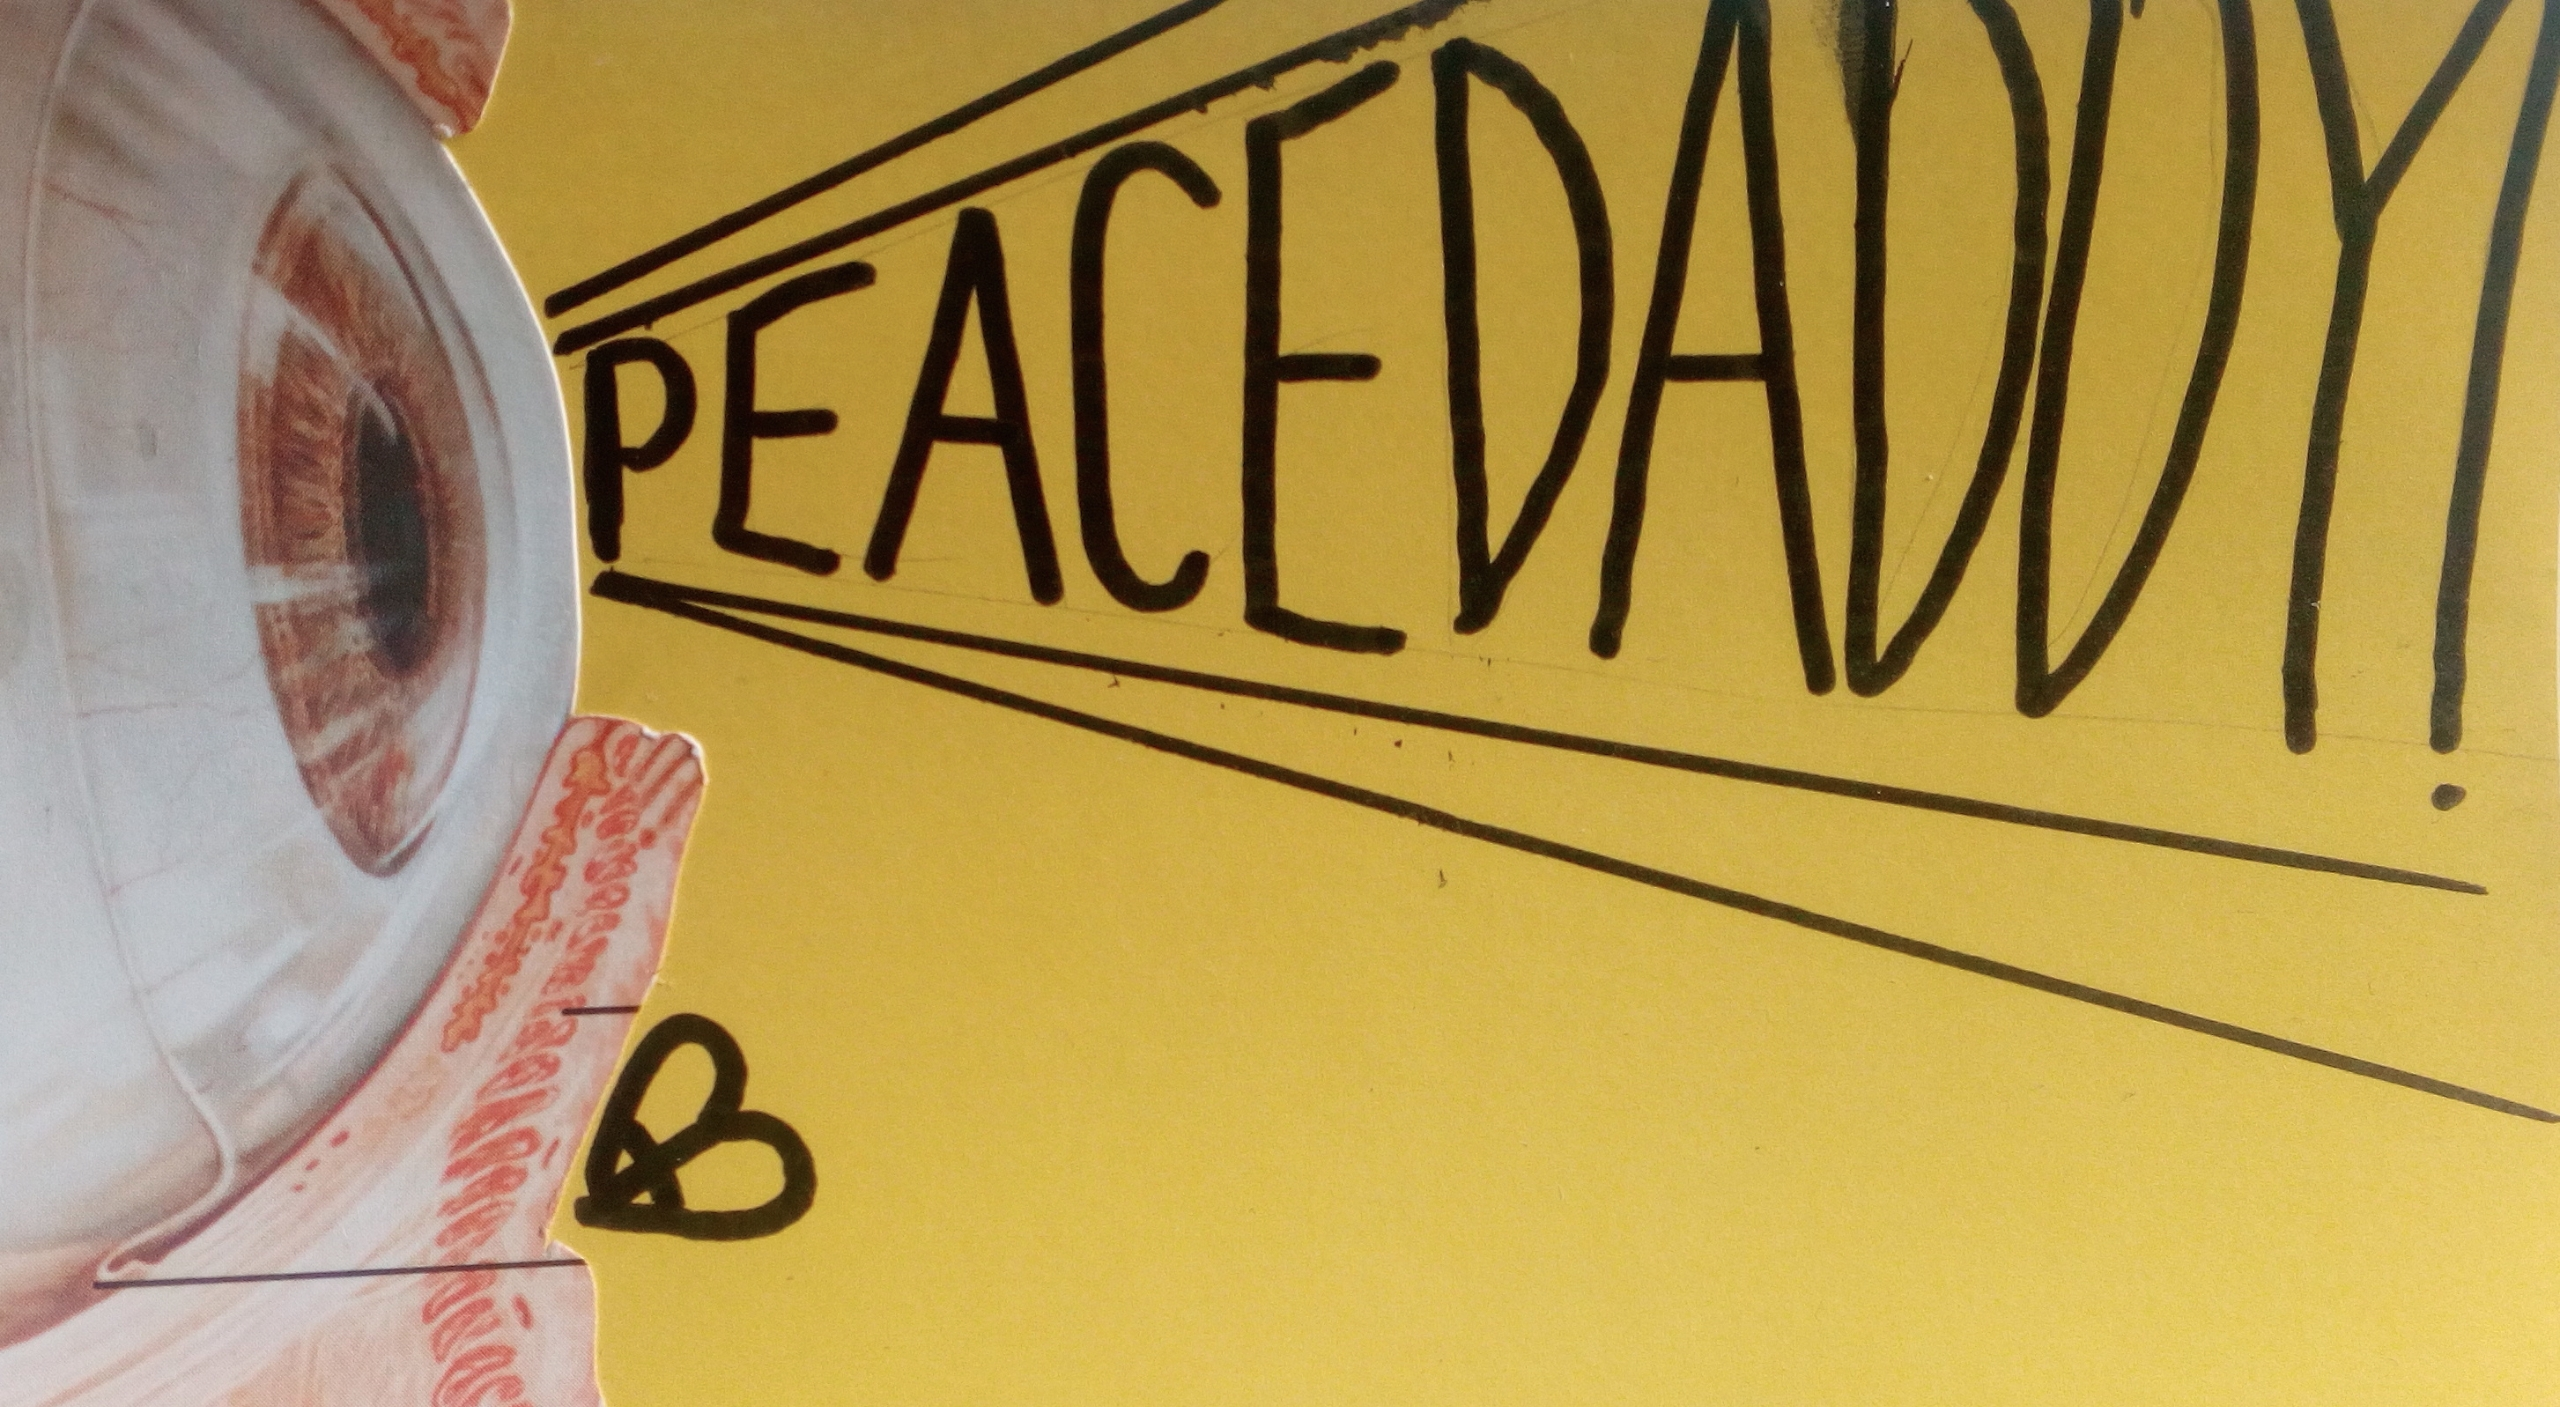 peacedaddy (@peacedaddy) Cover Image